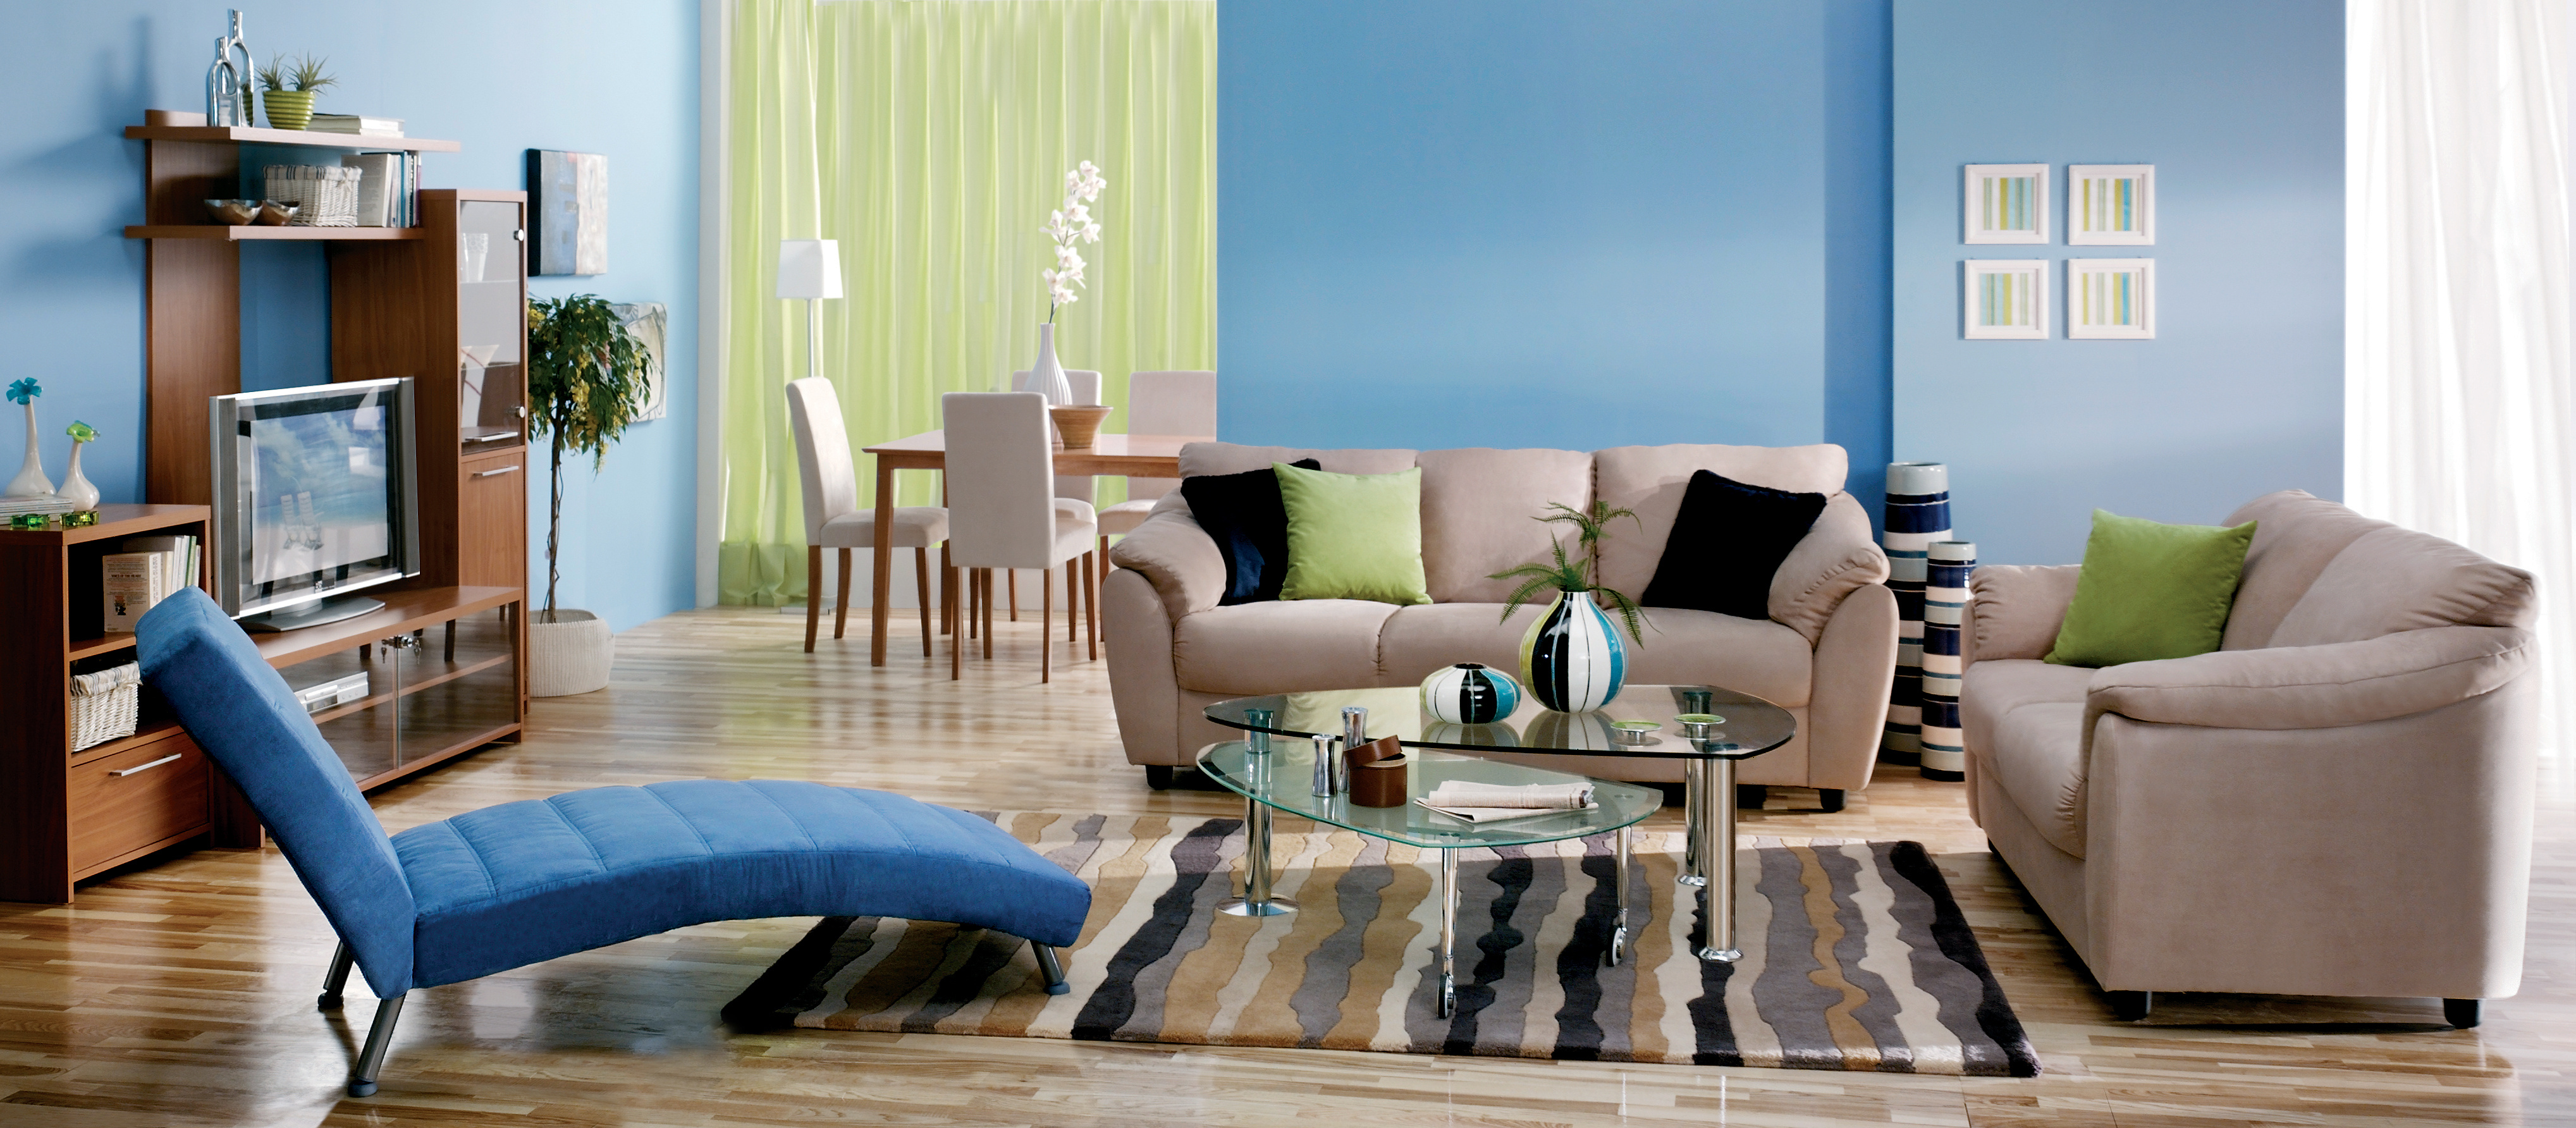 New Springtime Window Treatments Can Brighten Your Interiors\u2026and ...